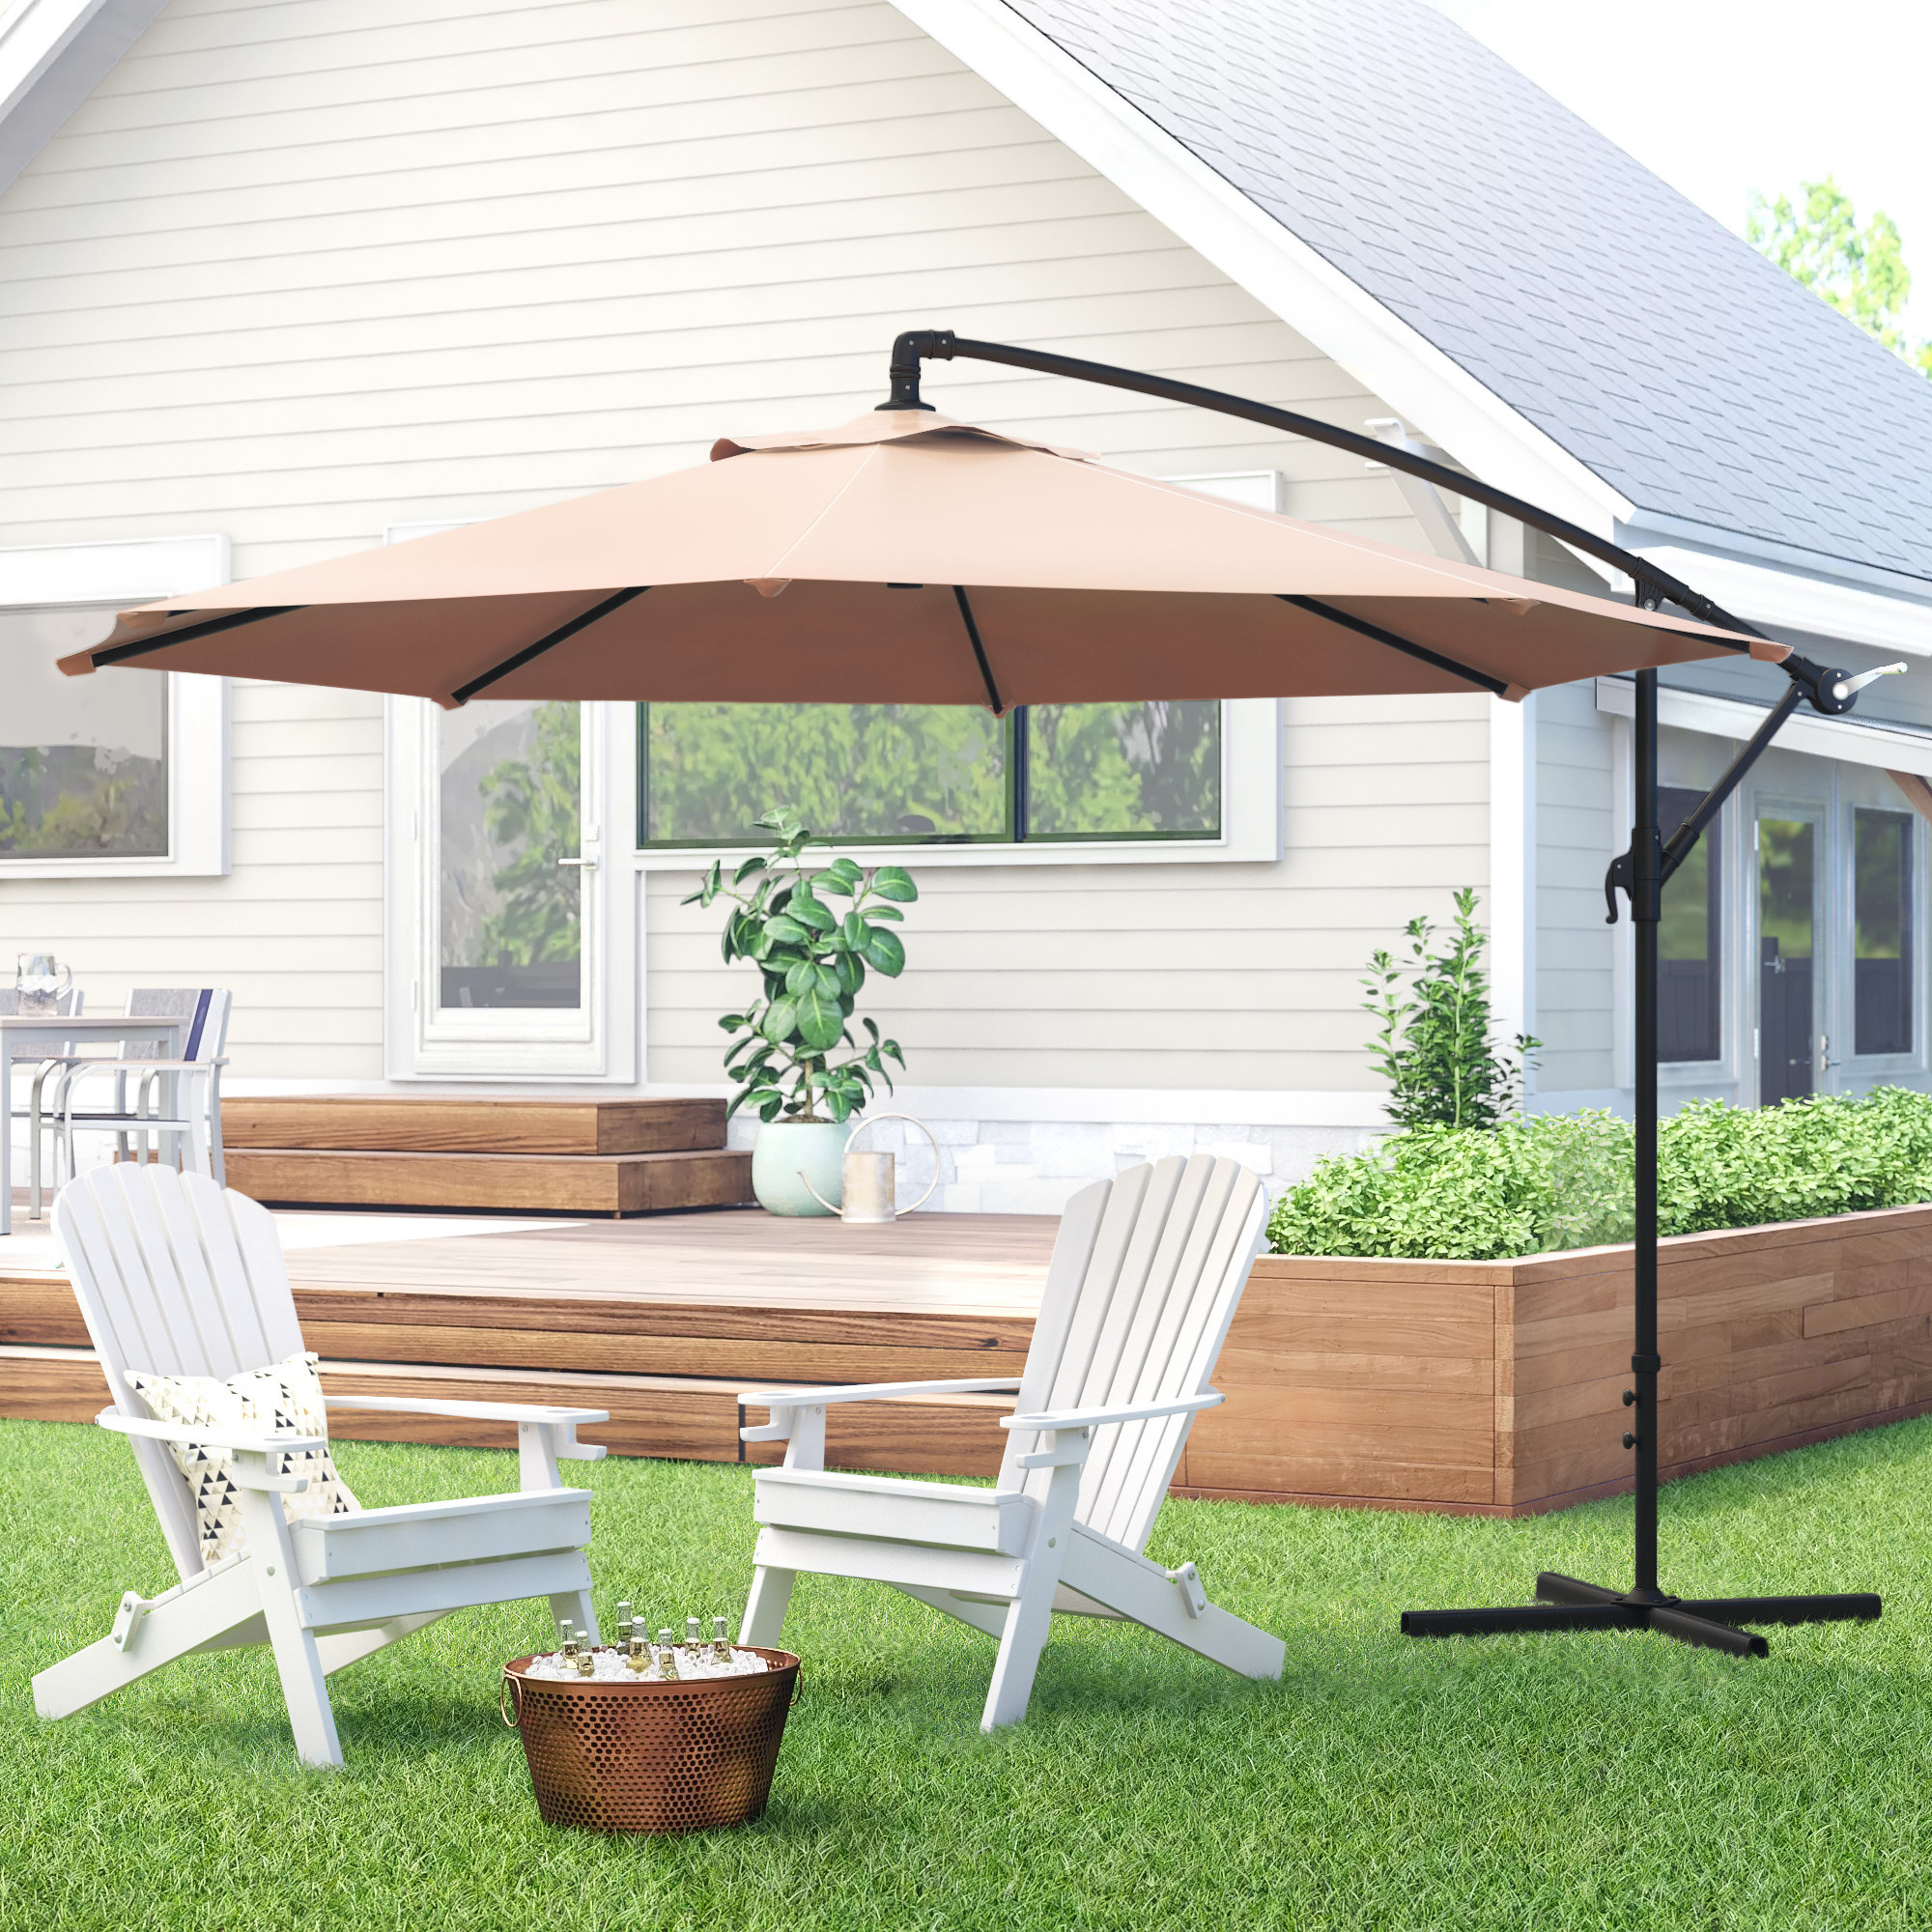 Most Popular Imogen Hanging Offset Cantilever Umbrellas Regarding Driskill Hanging Patio 10' Cantilever Umbrella (View 9 of 20)